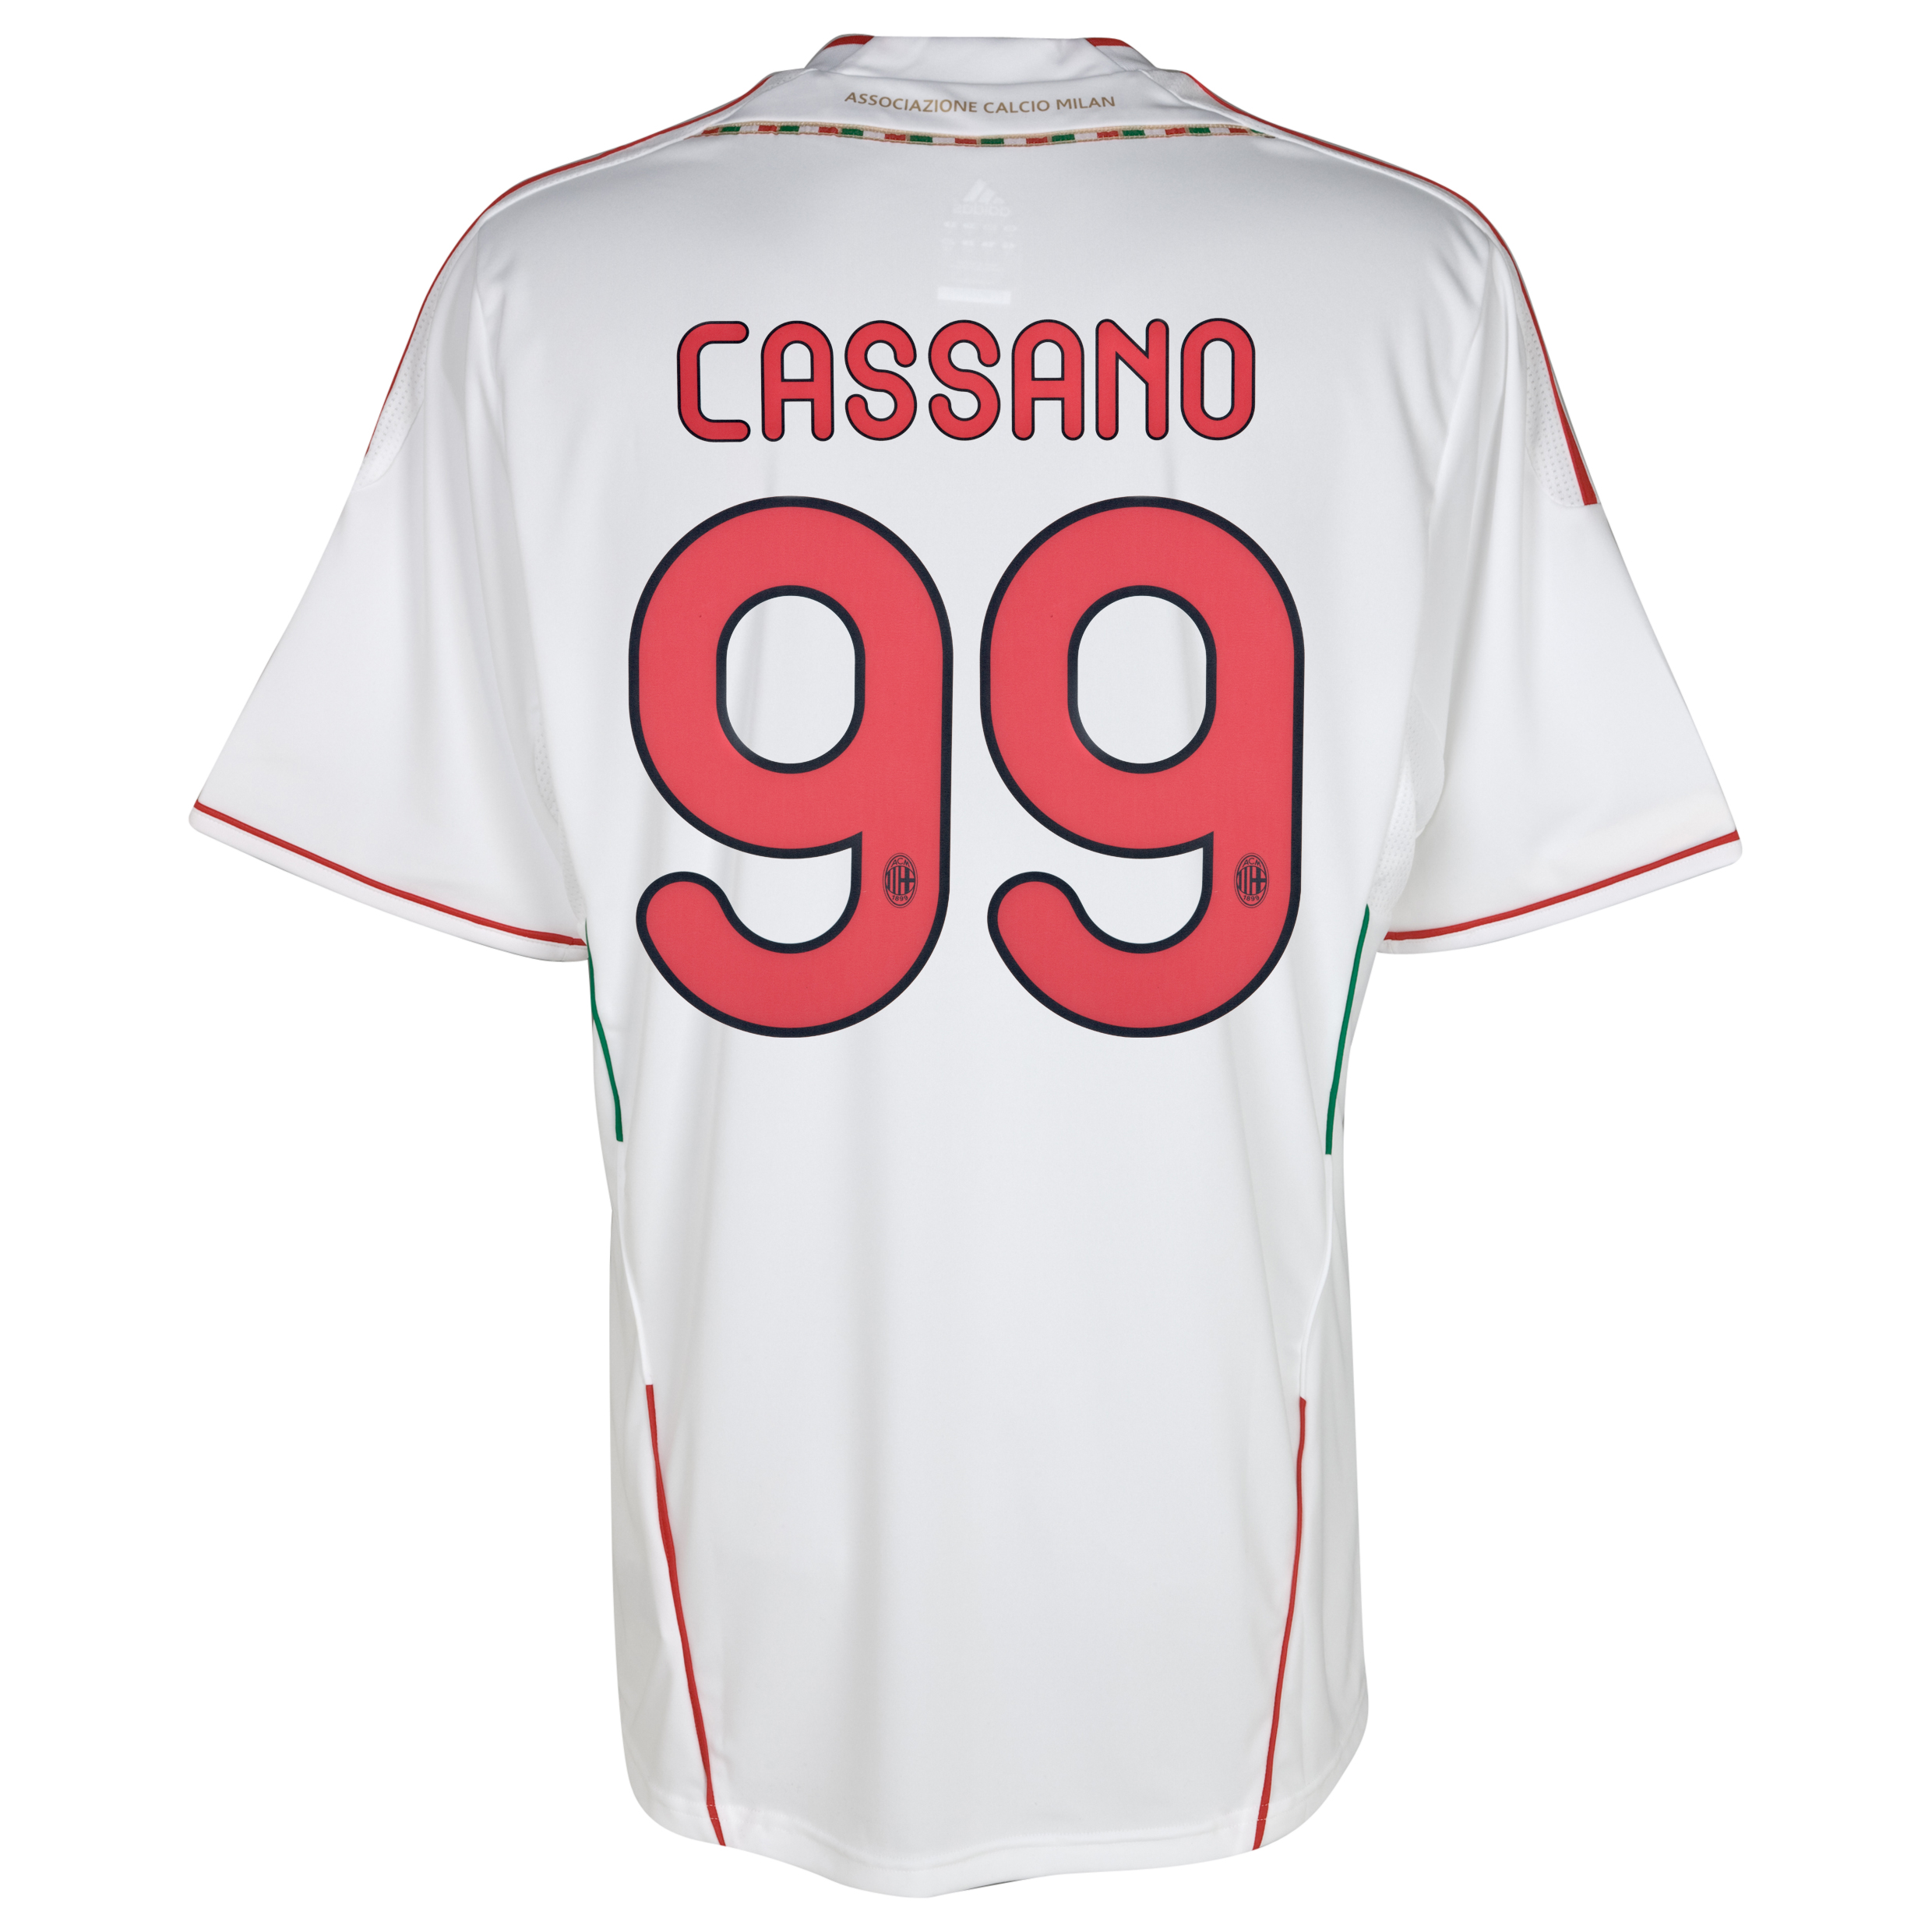 AC Milan Away Shirt 2011/12 with Cassano 99 printing